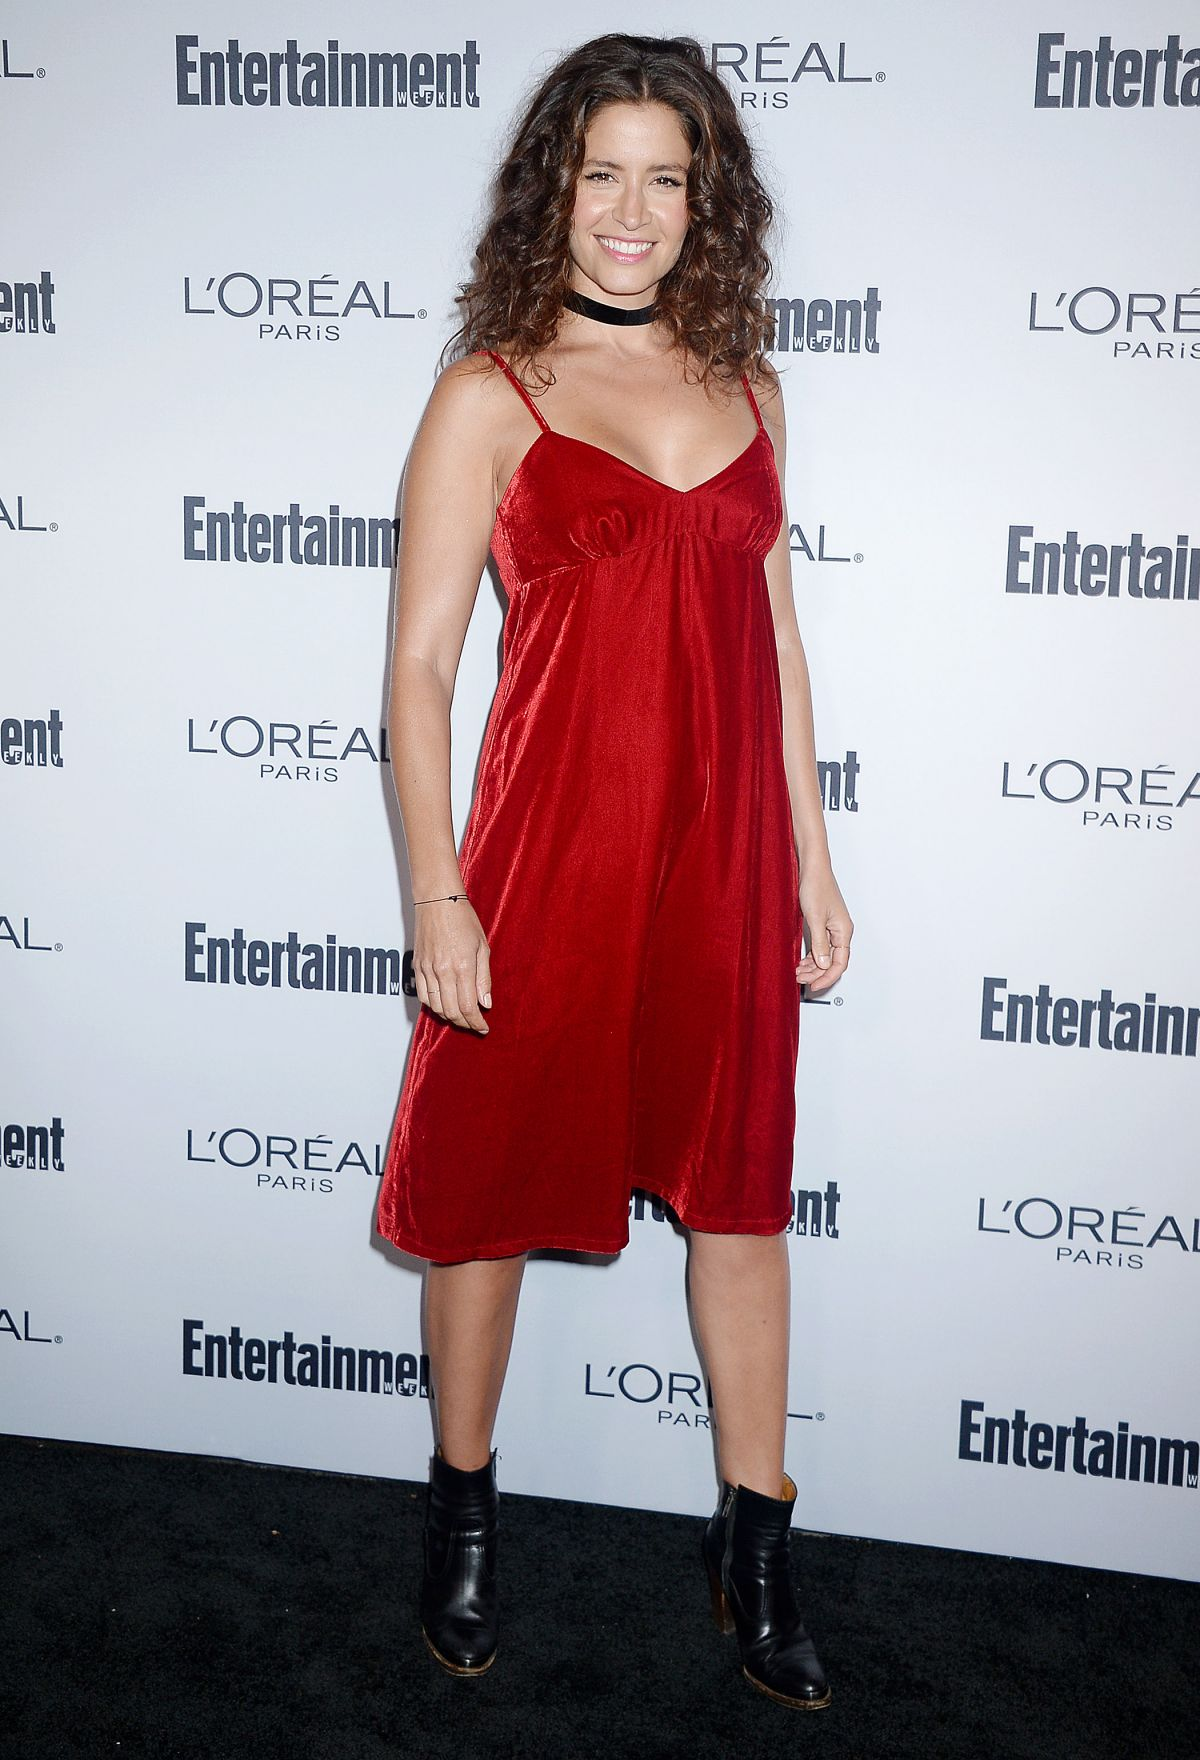 Mercedes Mason At Entertainment Weekly Hosts 2016 Pre-Emmy Party, Nightingale Plaza, LA